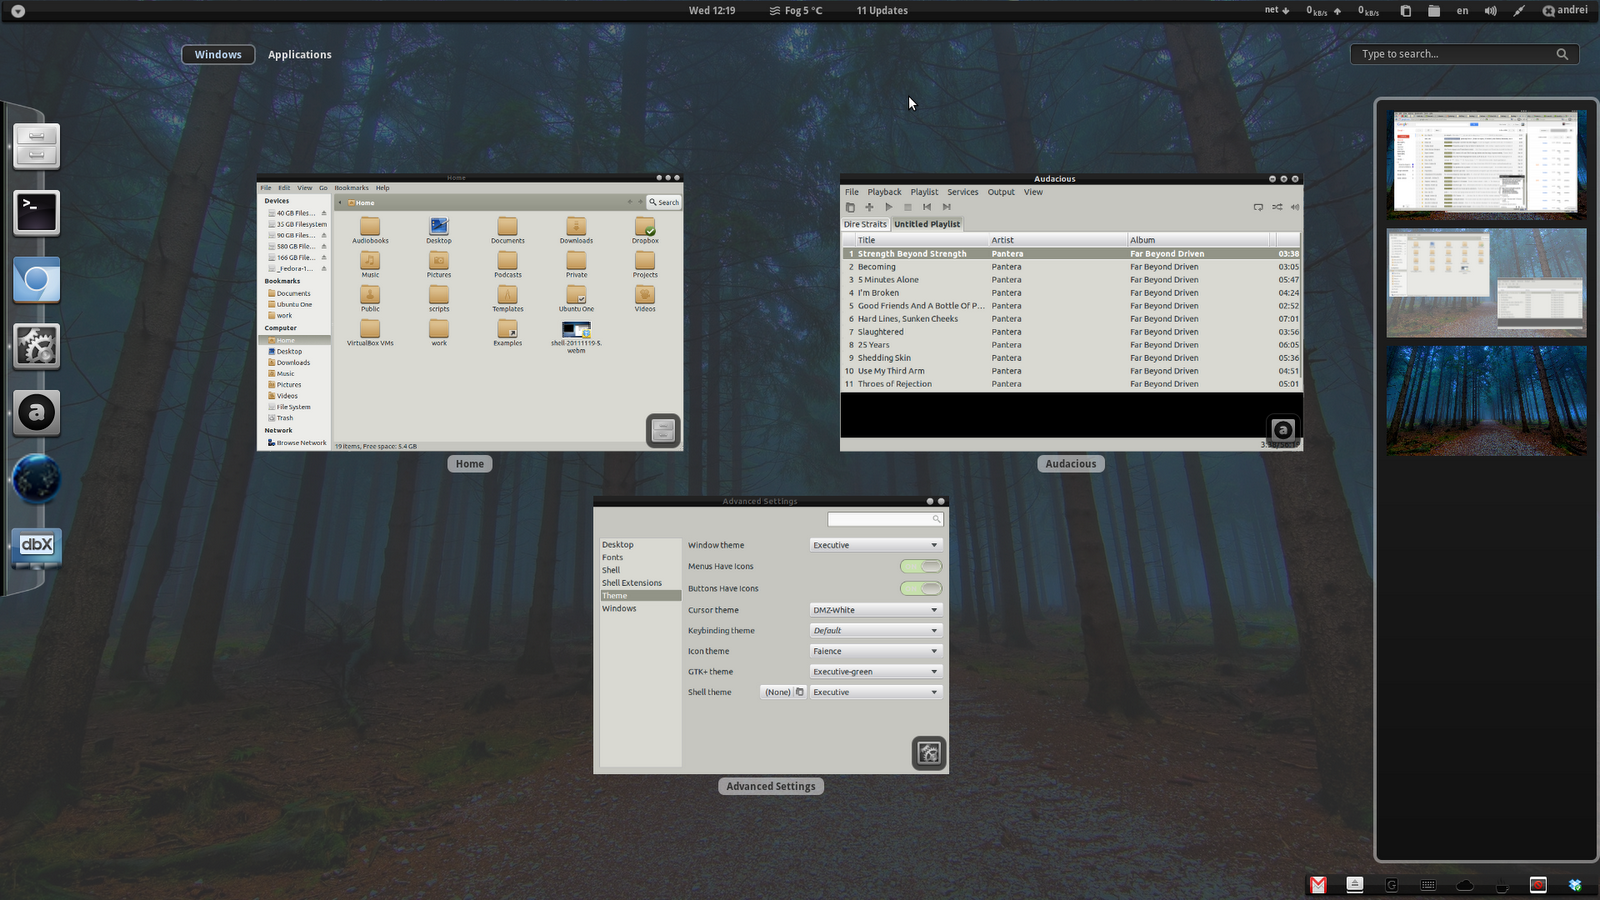 Executive: Beautiful Theme Pack With Matching GNOME Shell